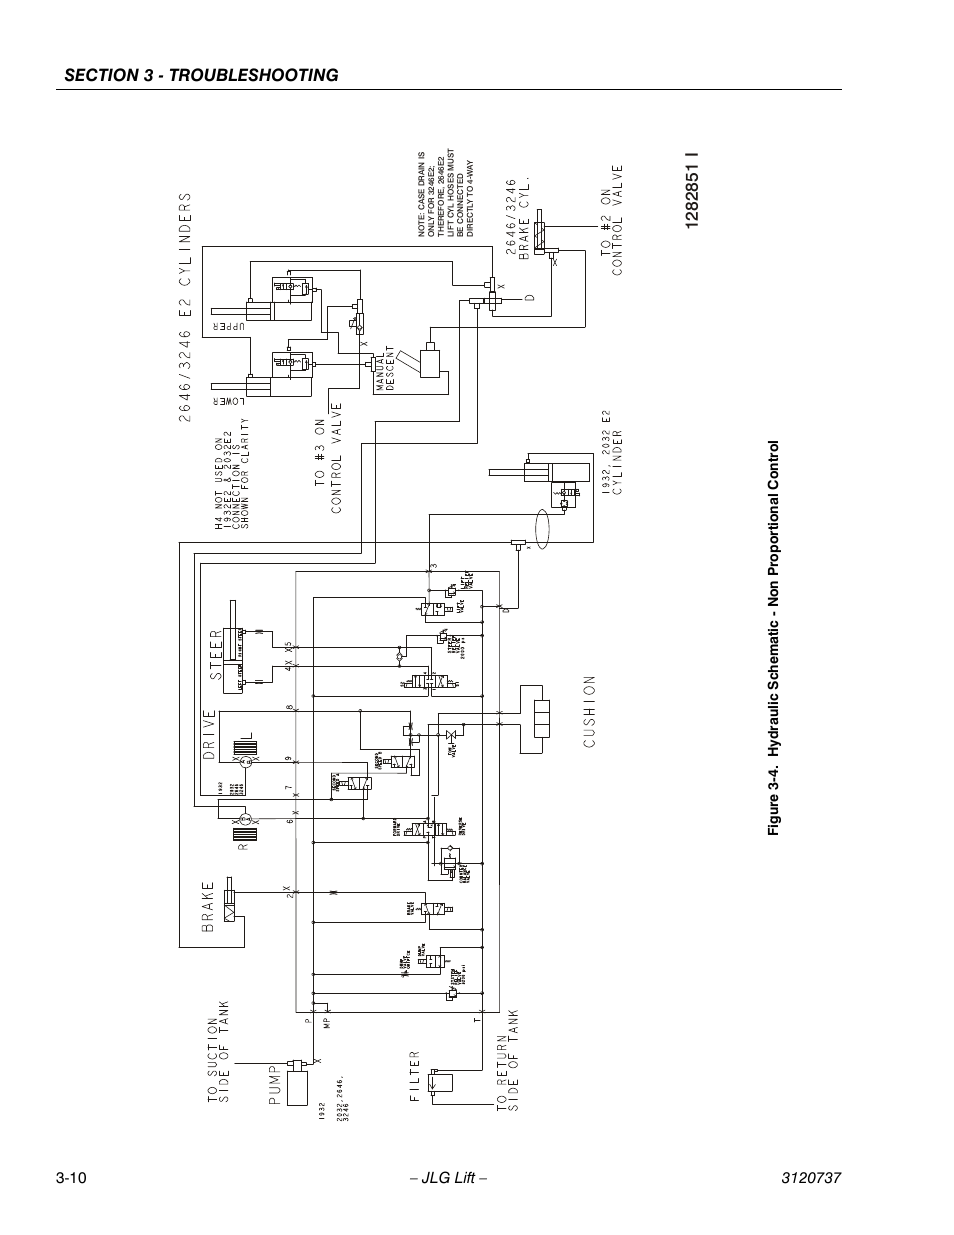 jlg 2632e2 wiring diagram wiring library Heavy Duty Trailer Wiring Diagram hydraulic schematic non proportional control 10 jlg 3246e2 ansi service manual user manual